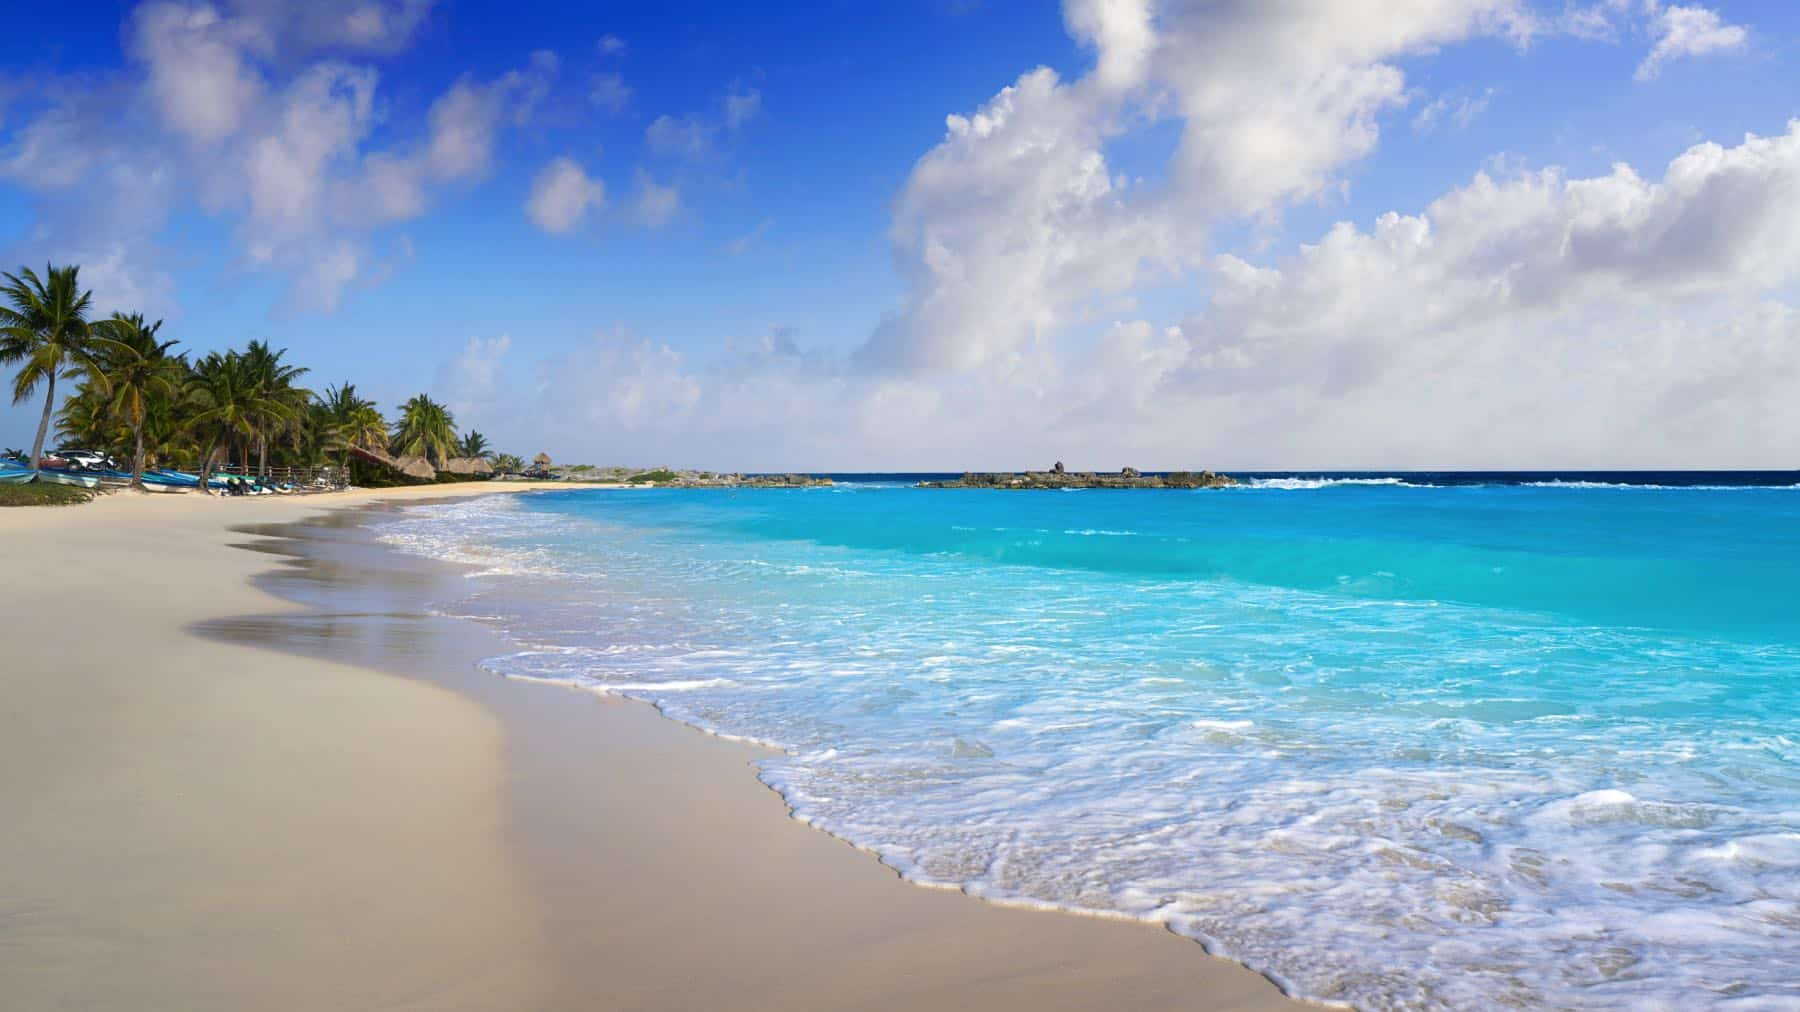 21 Things To Do in Cozumel: Mexico's Top Island